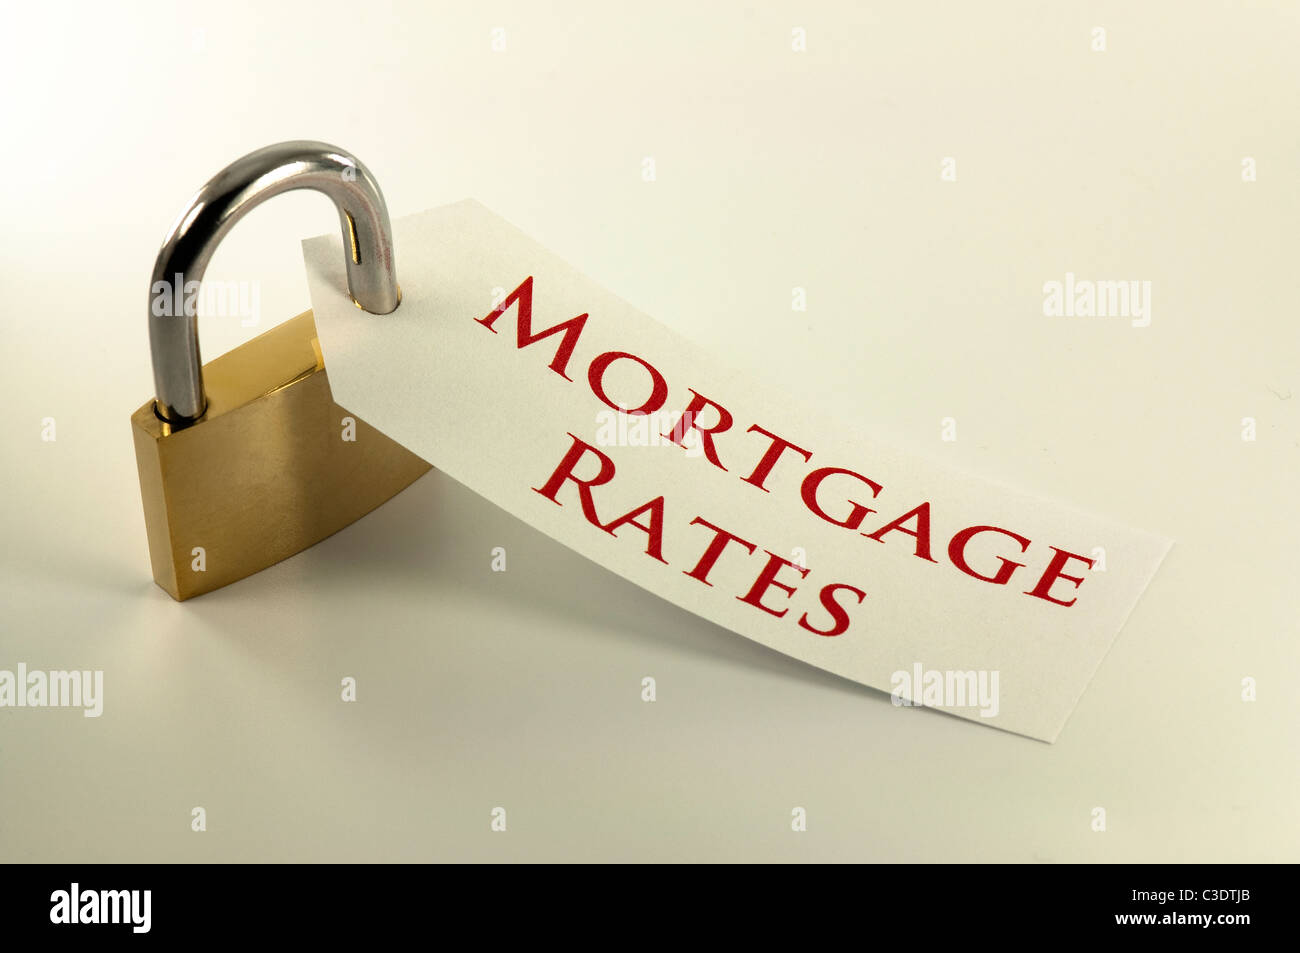 Mortgage rates locked down / fixed concept - Stock Image